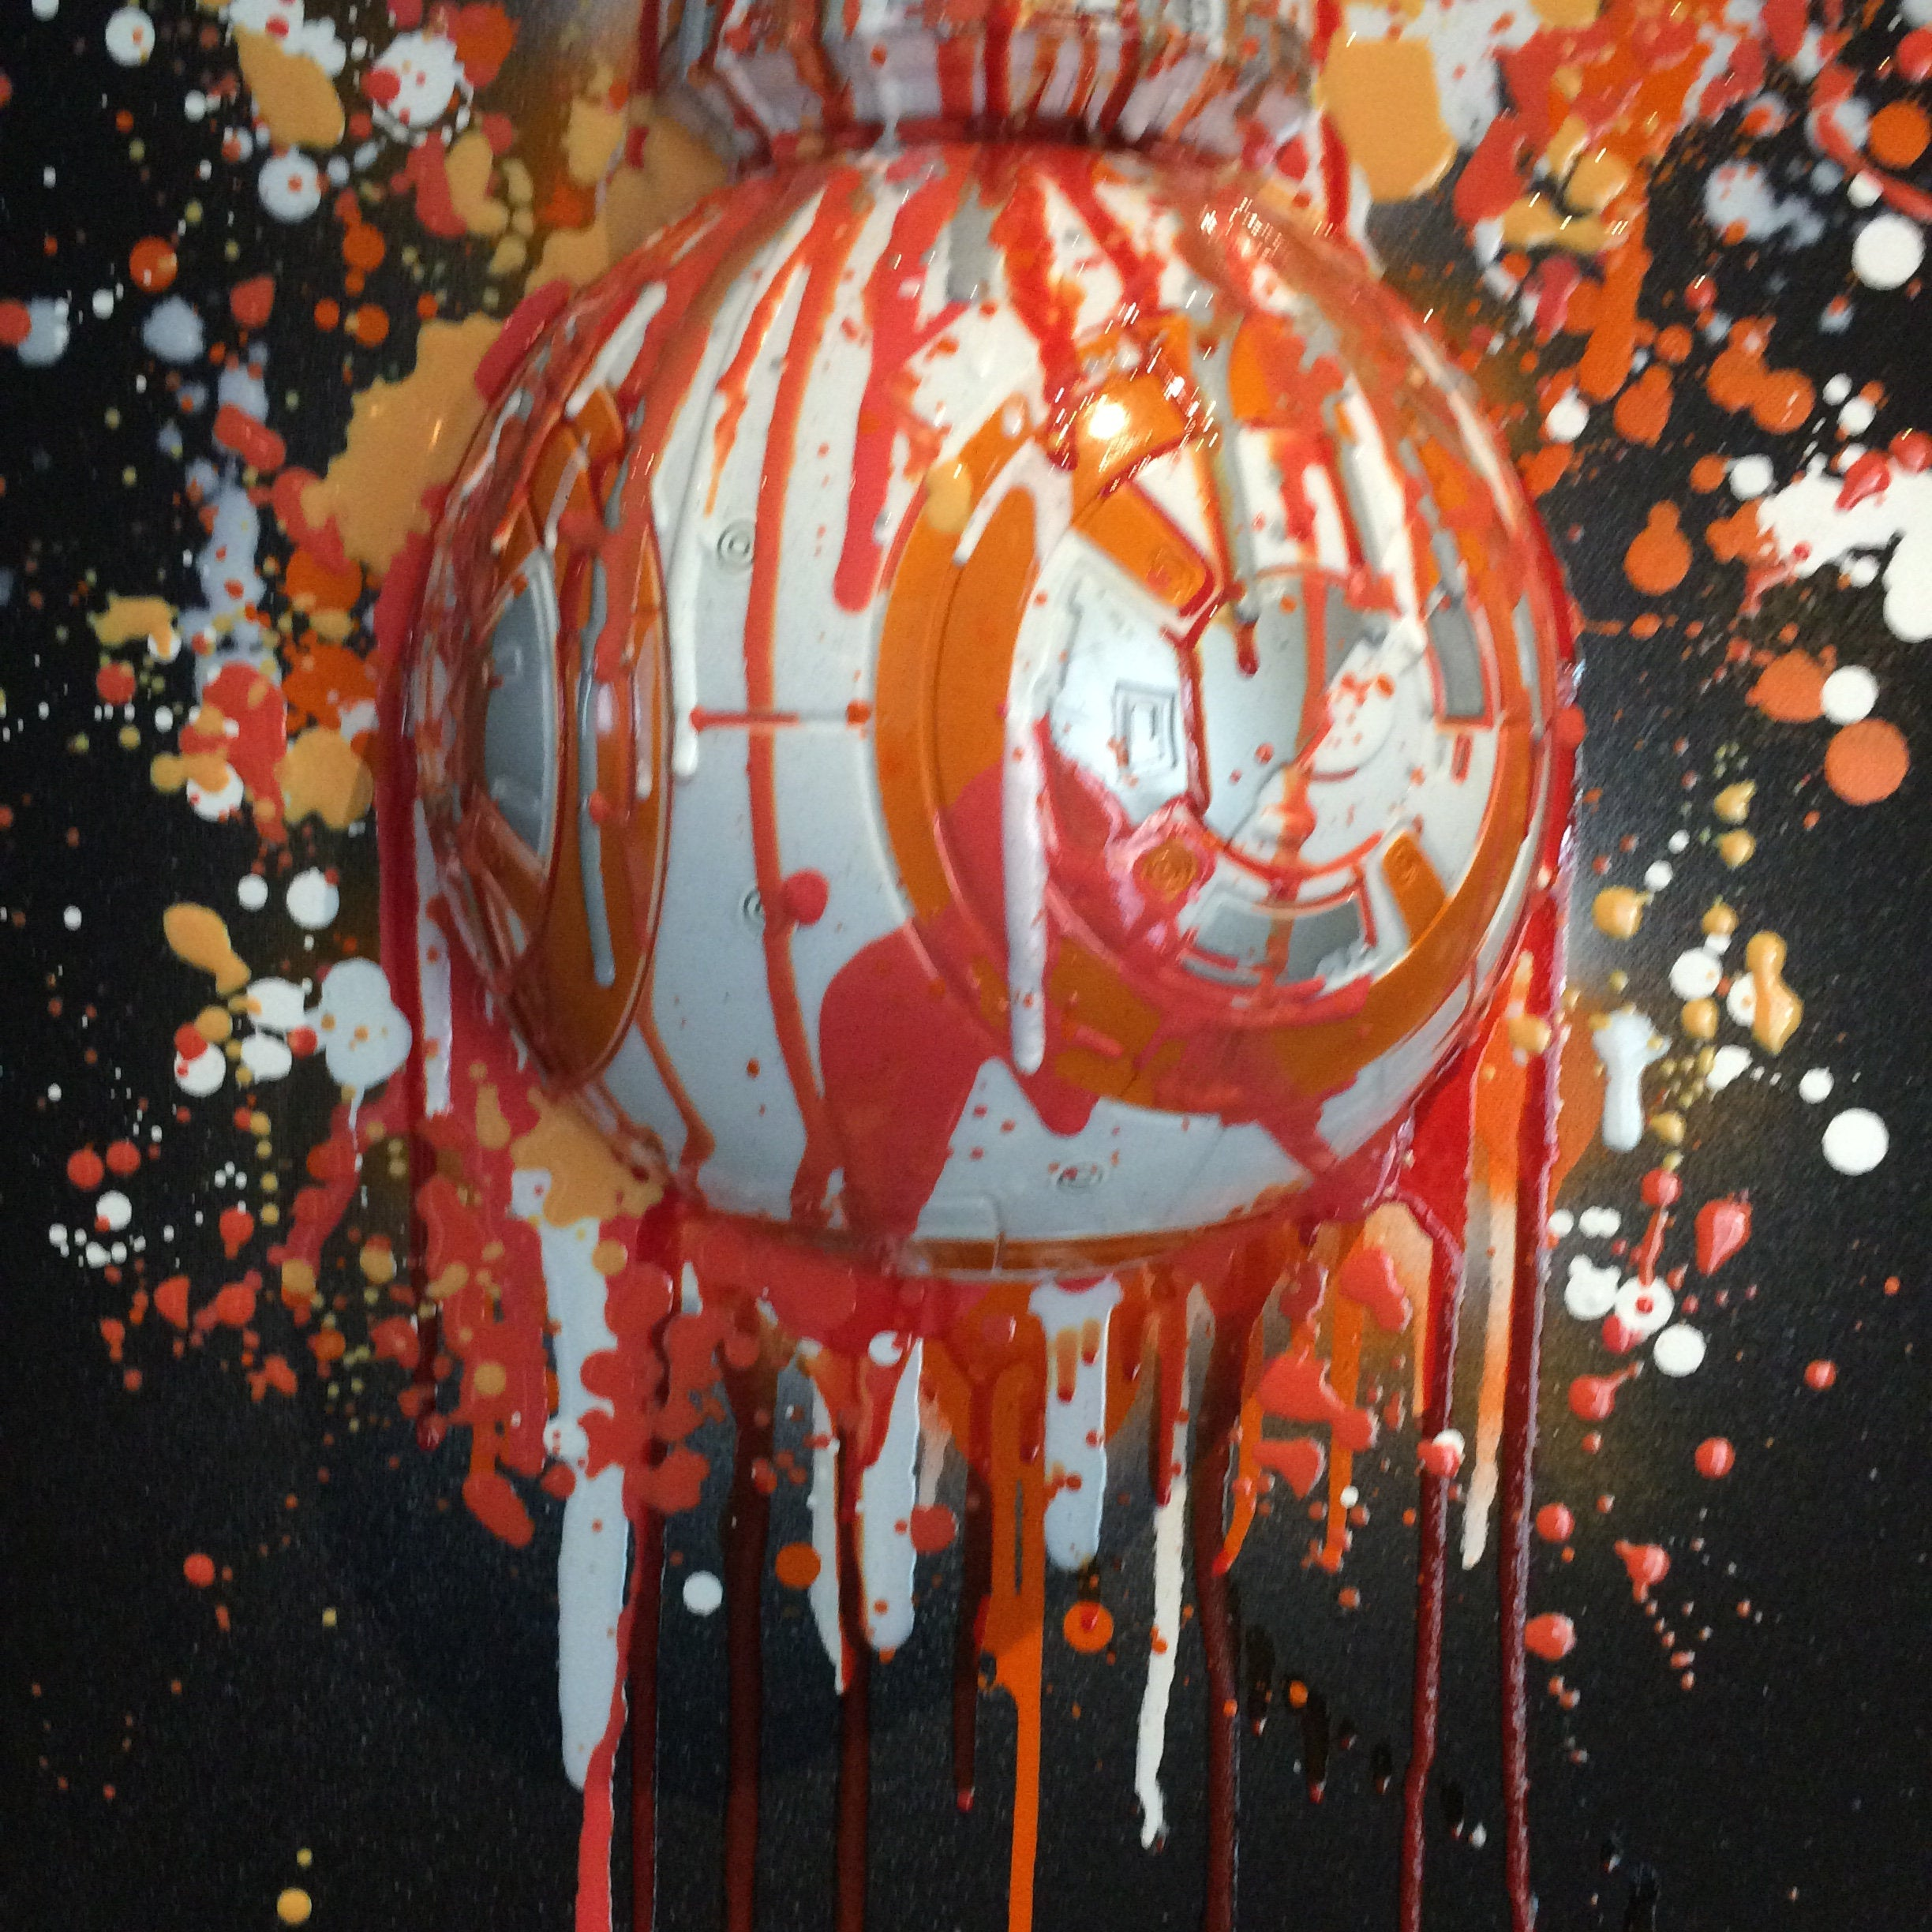 3D Graffiti BB-8 Droid Painting  resin drip wall  art  Star Wars Splatter